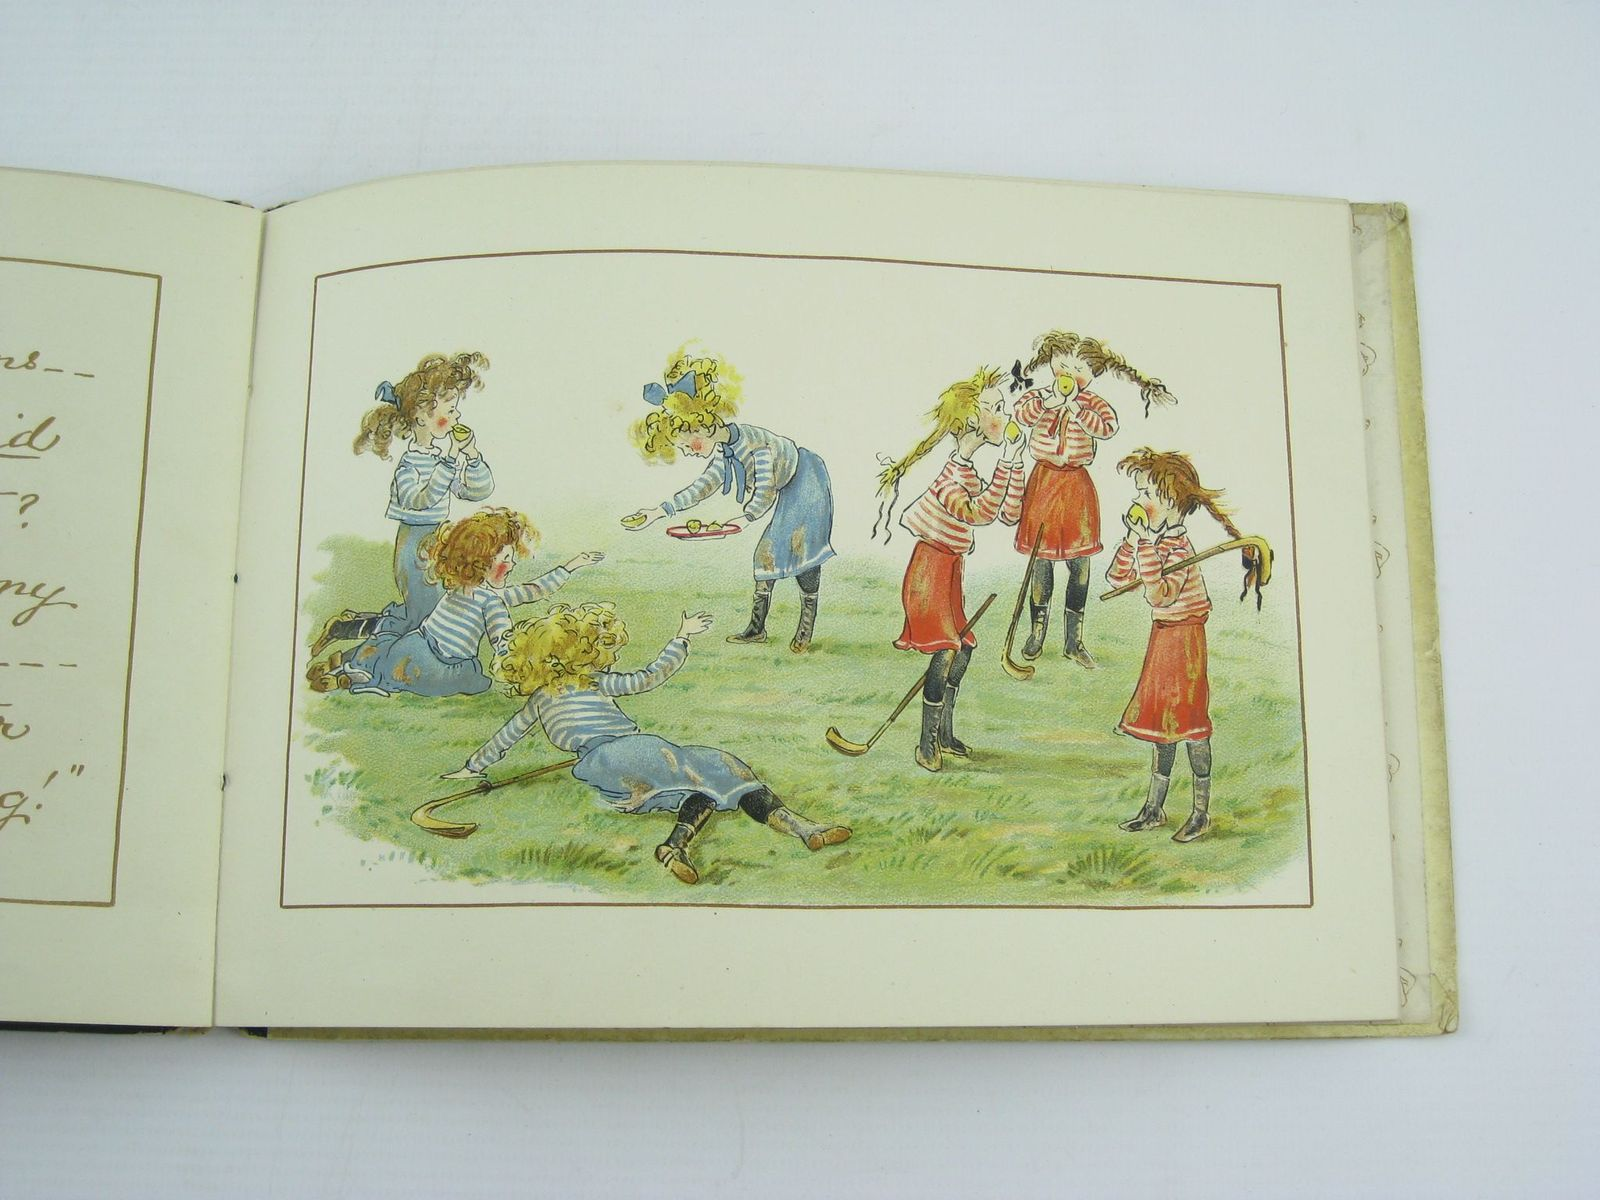 Photo of MOPS VERSUS TAILS written by Ainslie, Kathleen illustrated by Ainslie, Kathleen published by Castell Brothers Ltd., Frederick A. Stokes Company (STOCK CODE: 1311059)  for sale by Stella & Rose's Books